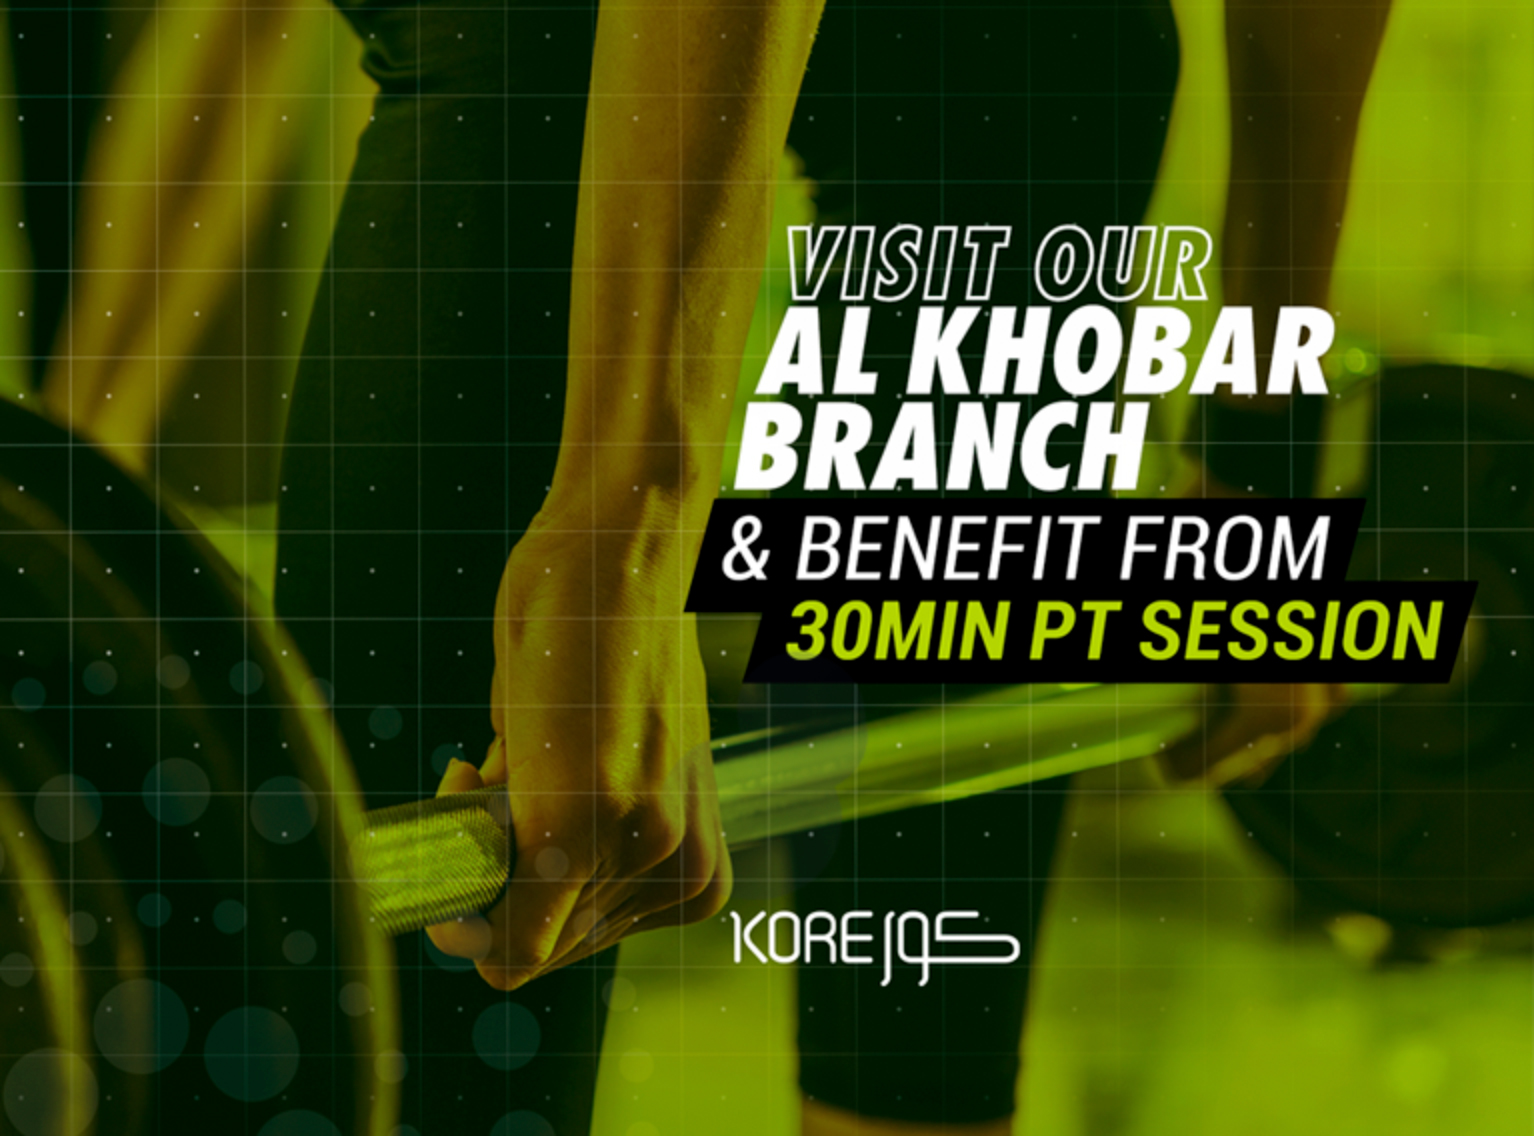 Kore – Brand, Strategy & Social Media Uplift For KSA Women's Gym